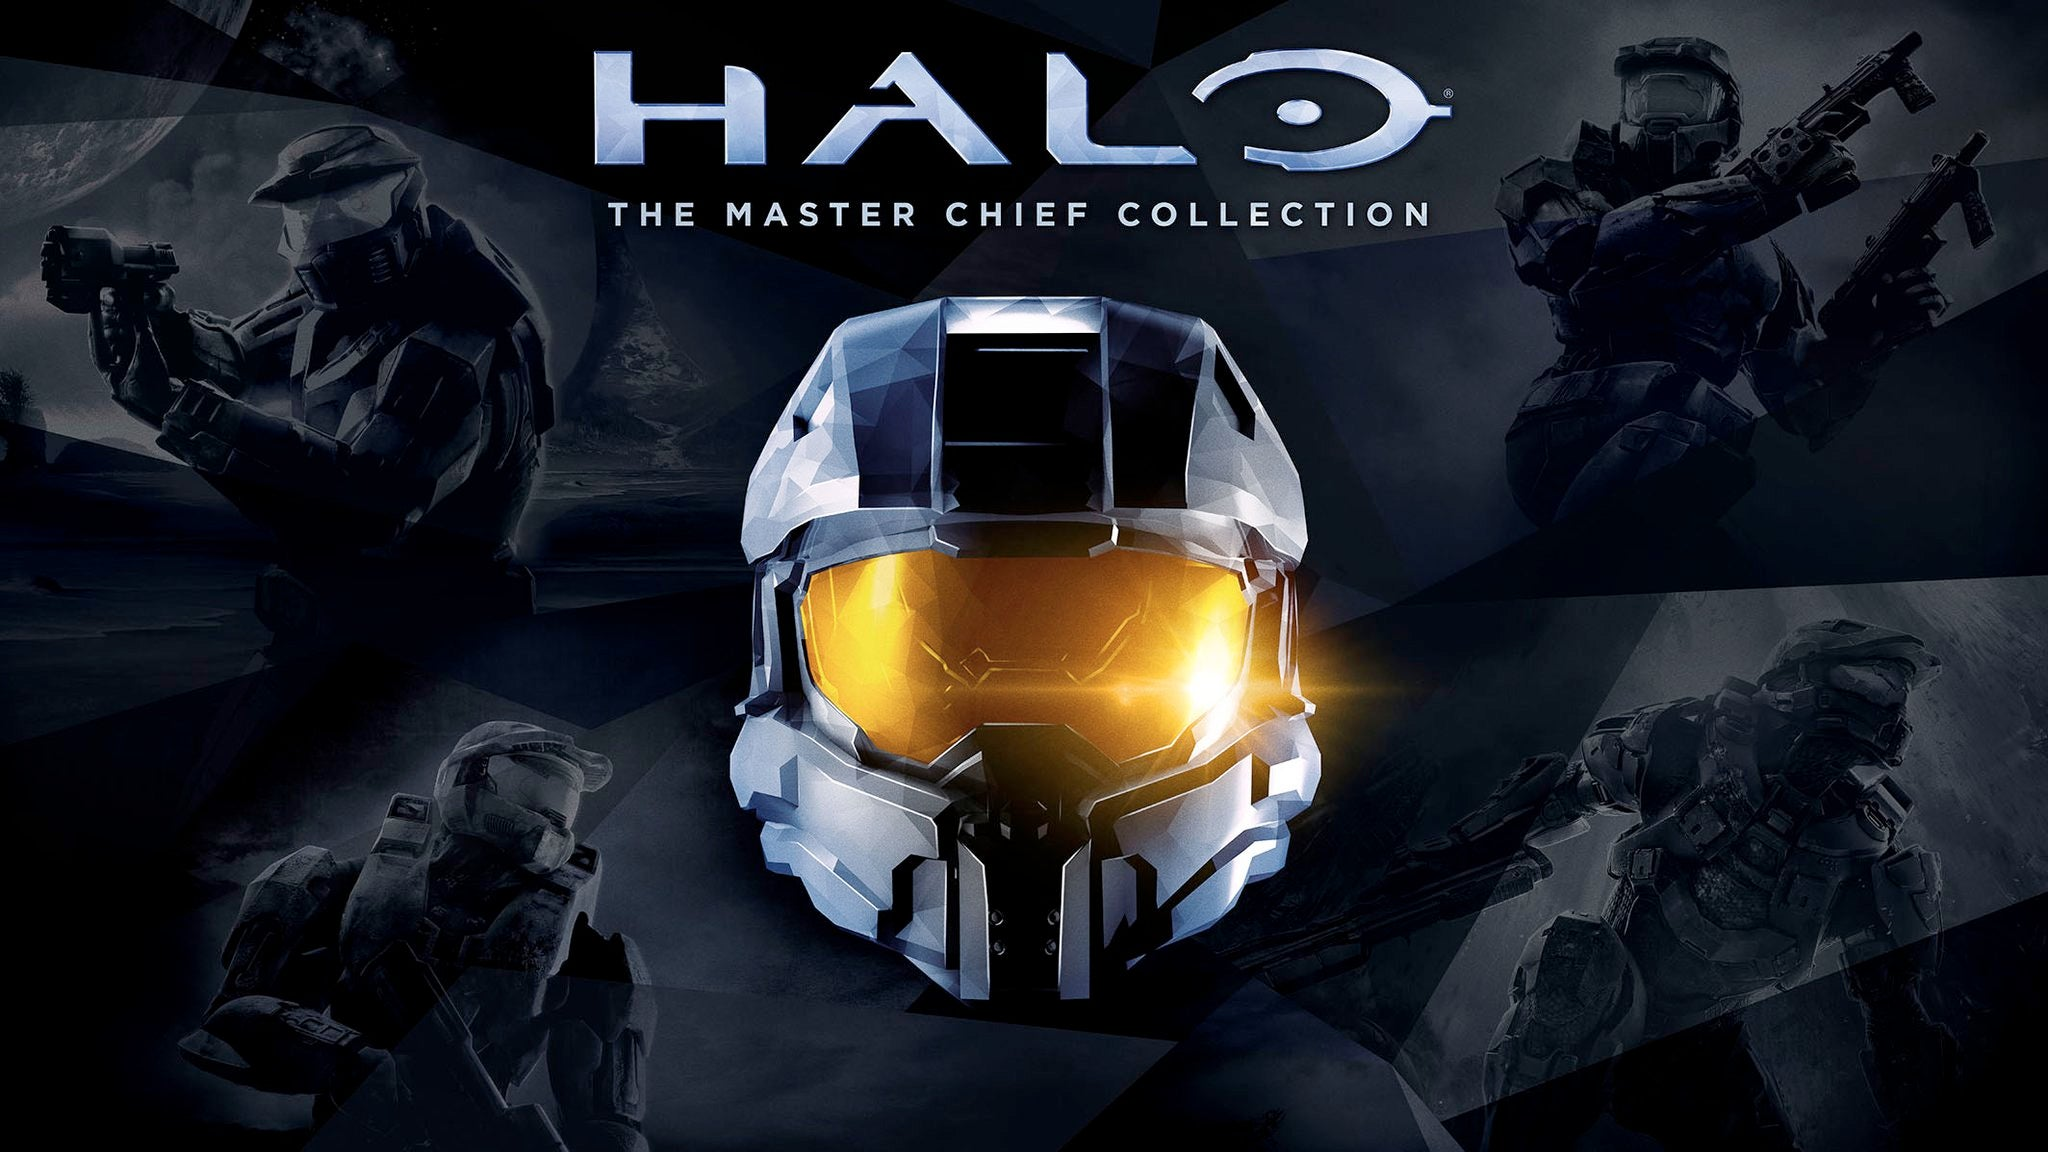 Halo The Master Chief Collection Is Coming To Pc And Will